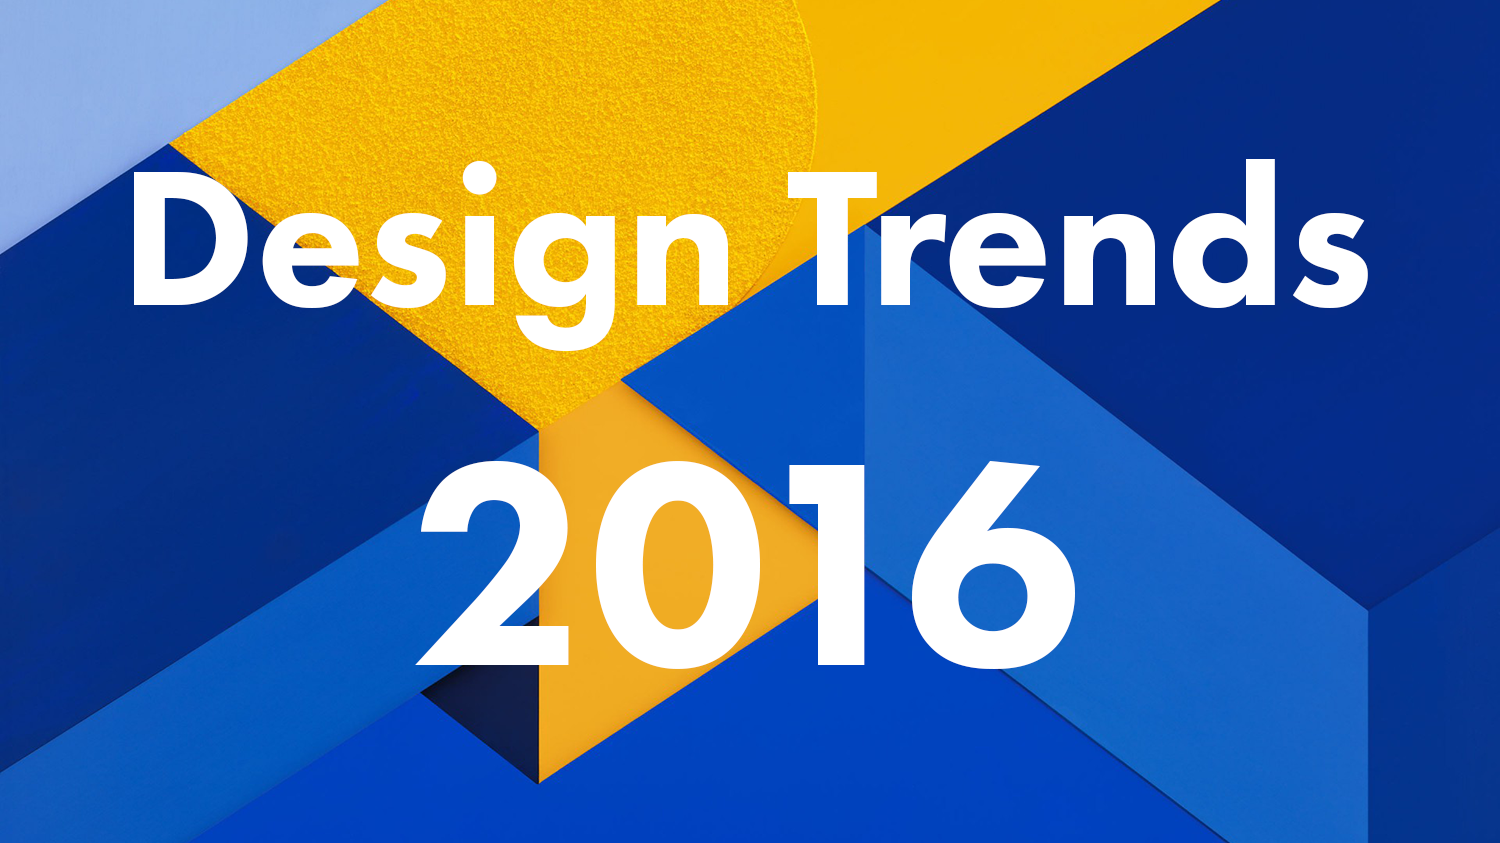 Design Trends 2016 21 Leading Designers Artists And